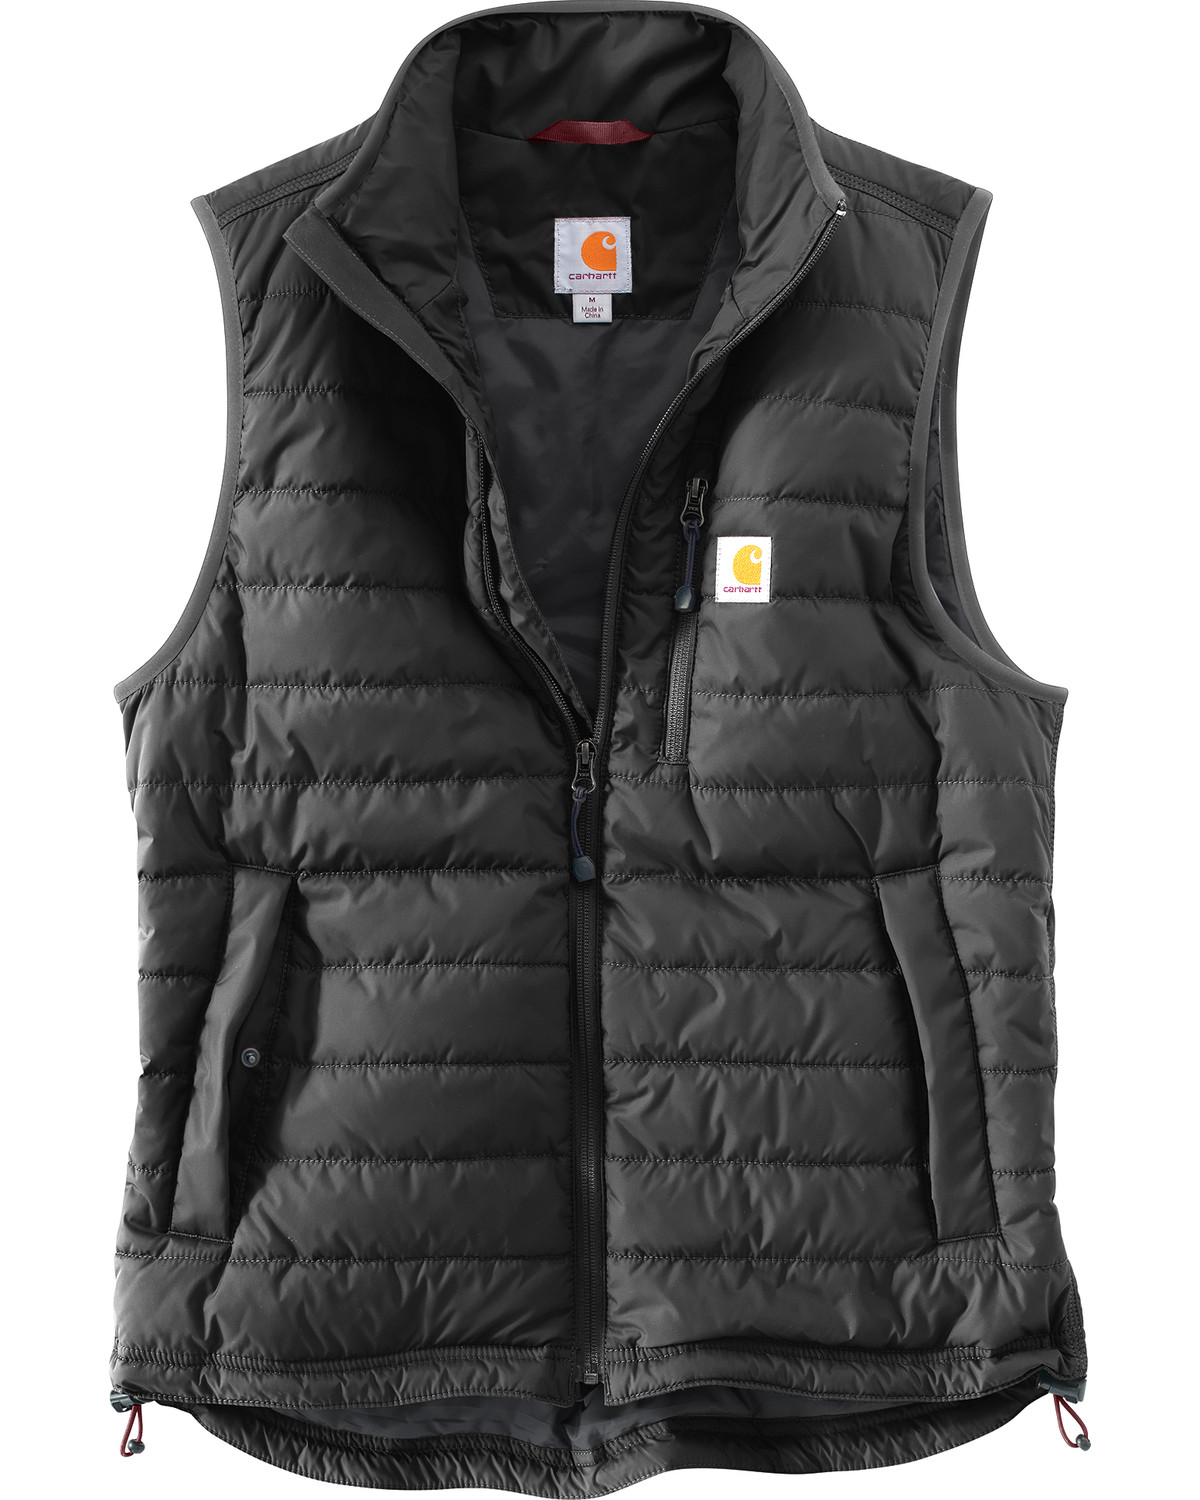 Mens tall work vest option brokers with the minimum investment